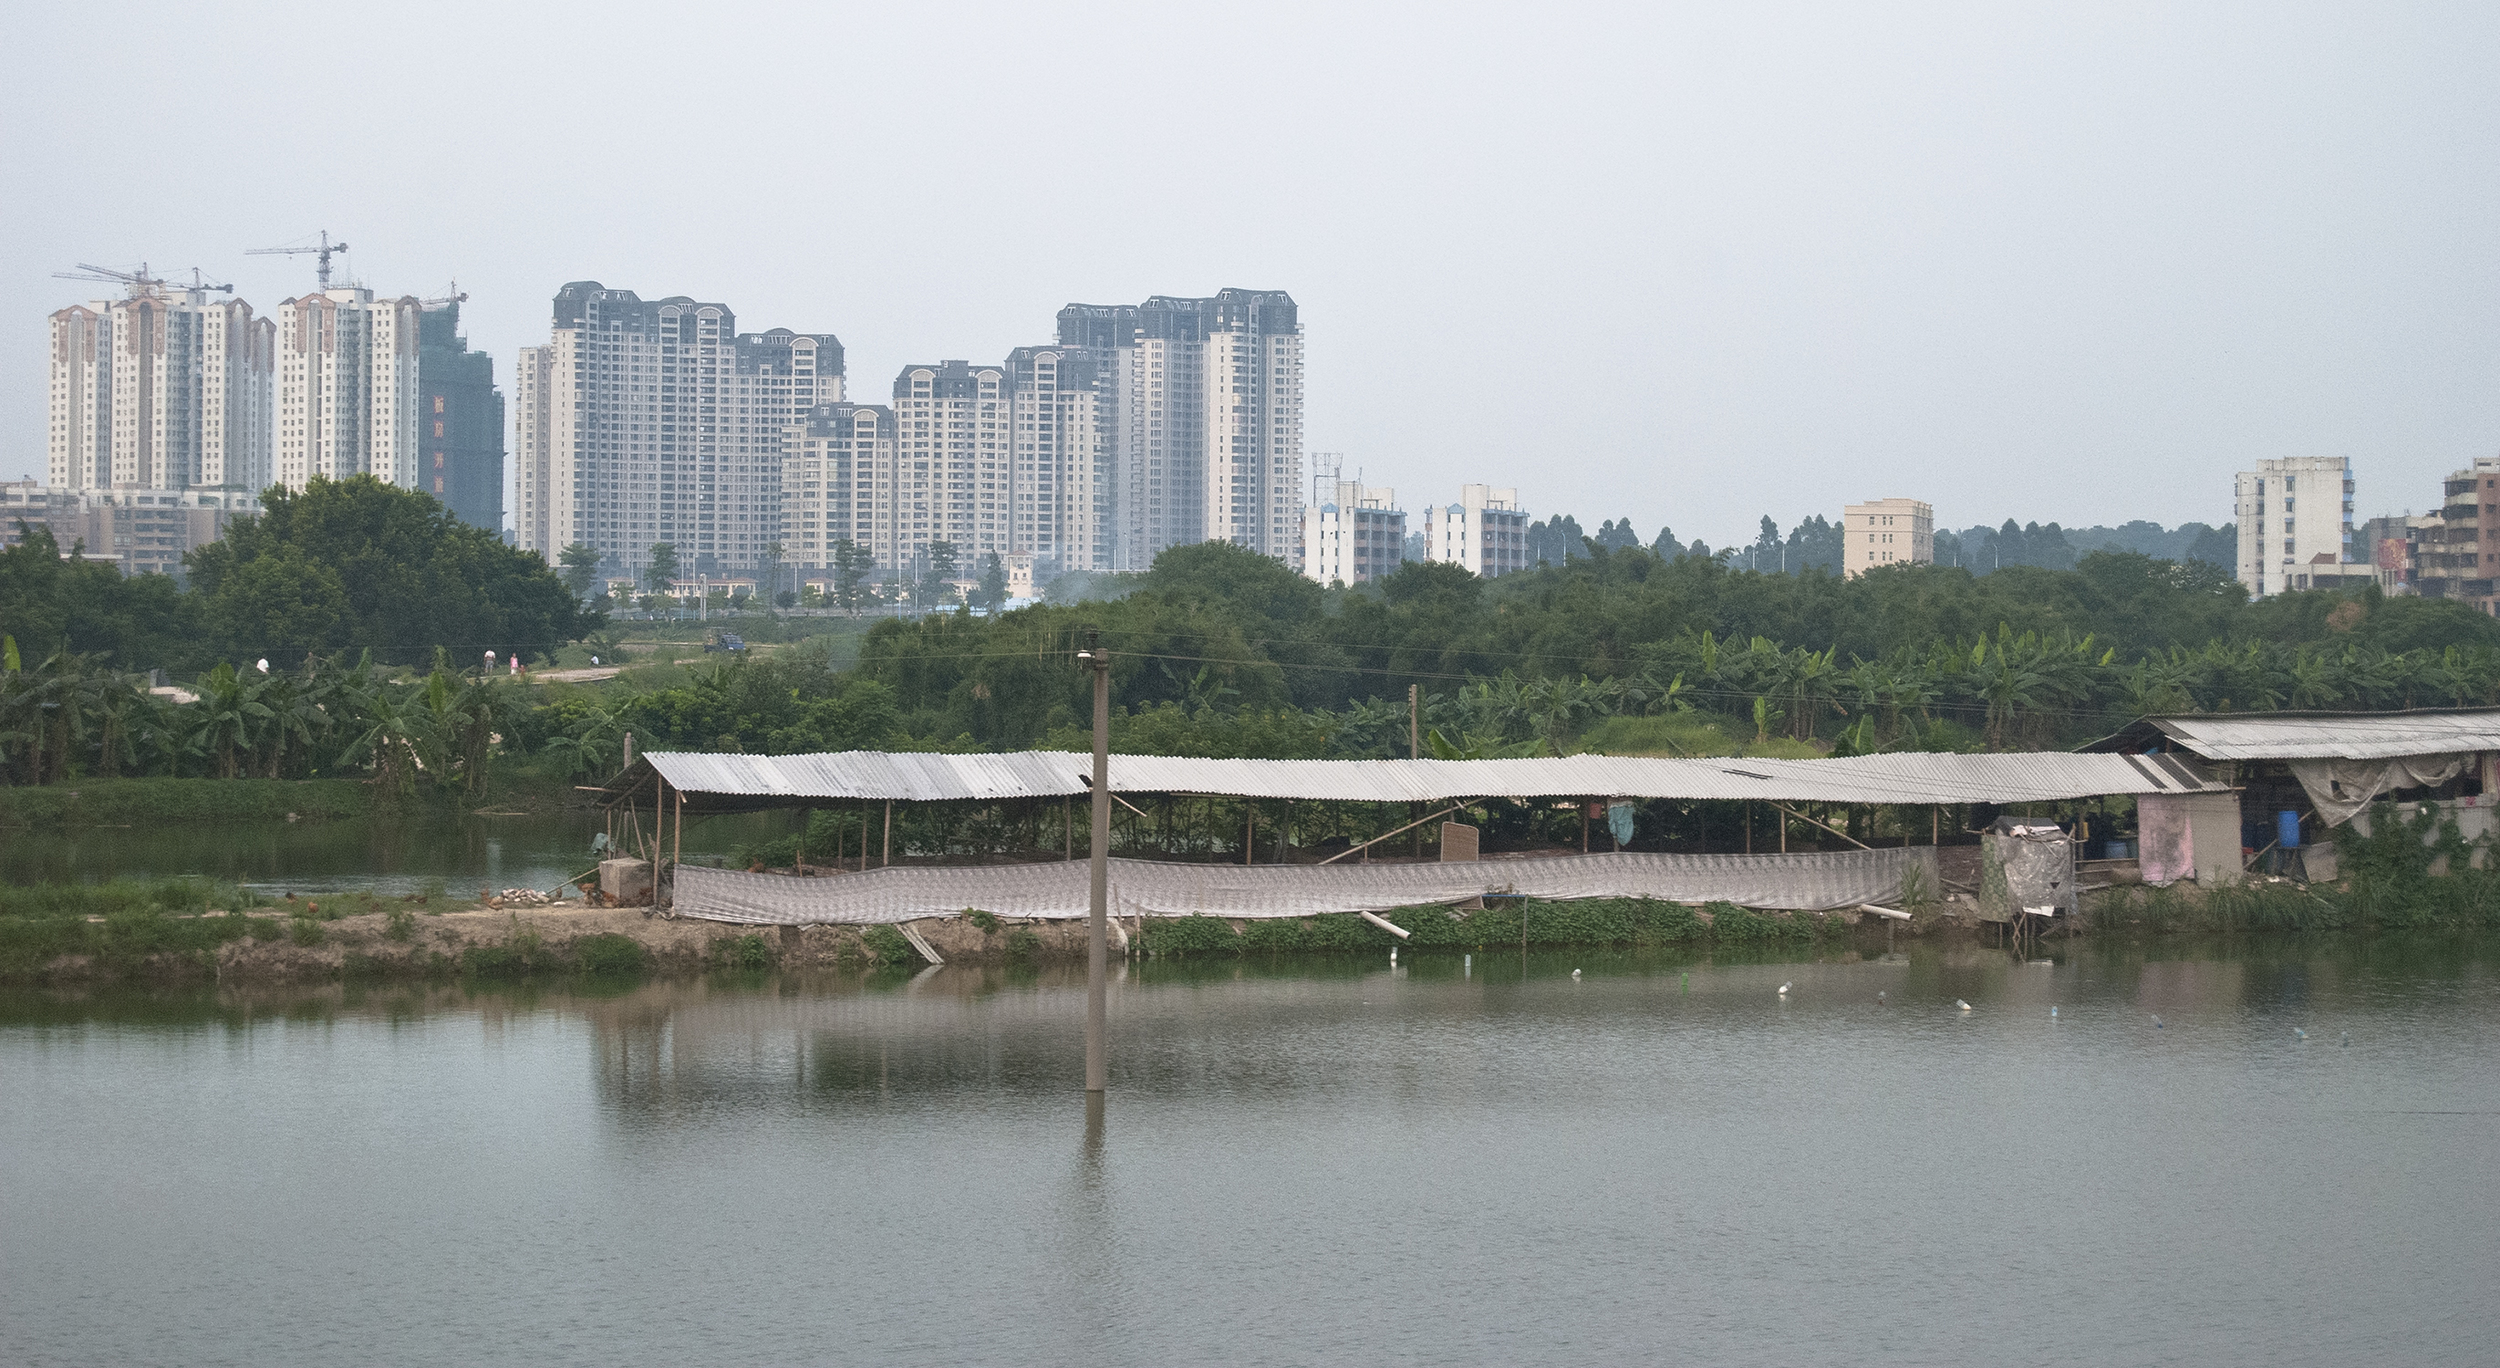 Outskirts of Beijing